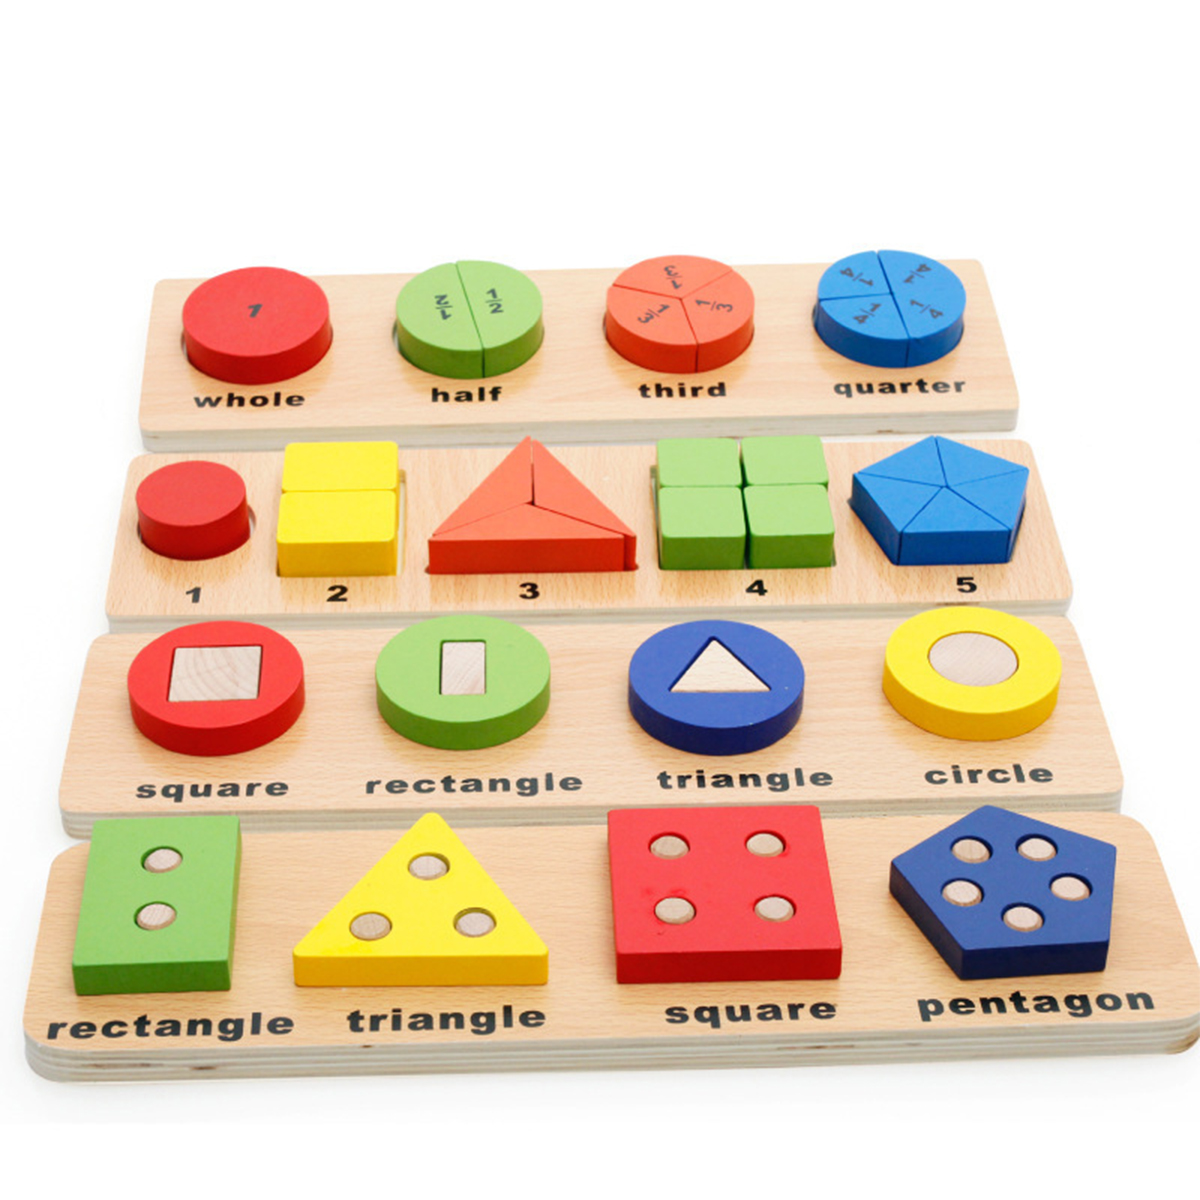 Wooden Geometric Matching Blocks Kids Baby Educational Toys Inlay Building Block Teaching Aid Toy Gift